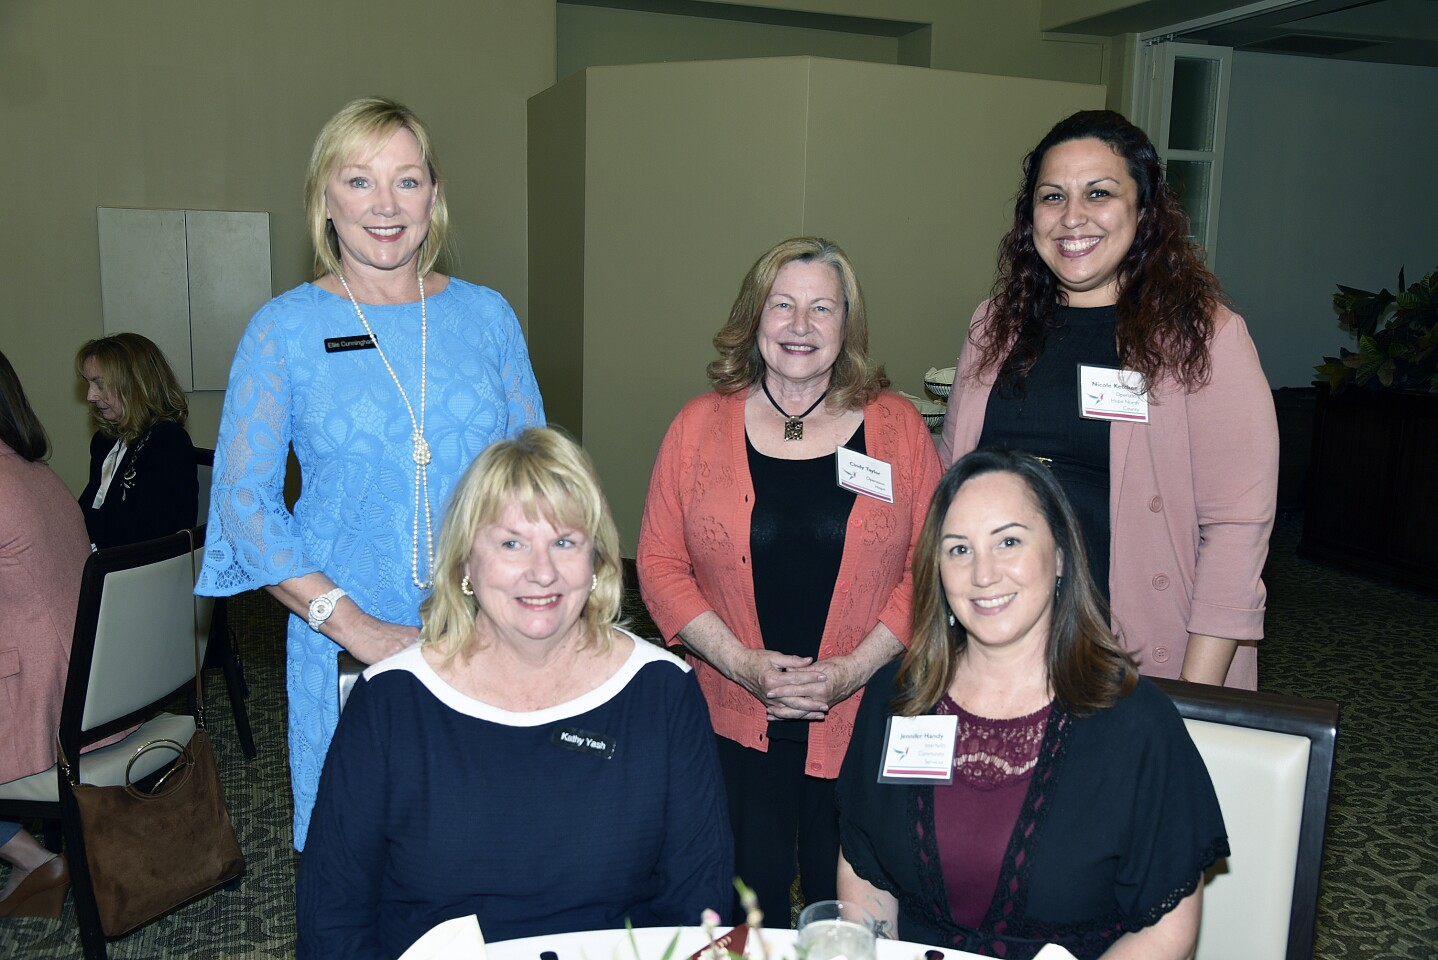 Volunteer Chair Ellie Cunningham, grantee Operation Hope representatives Cindy Taylor and Nicole Ketcher. Seated: Member-at-Large Kathy Yash, Jennifer Handy of grantee Interfaith Community Services